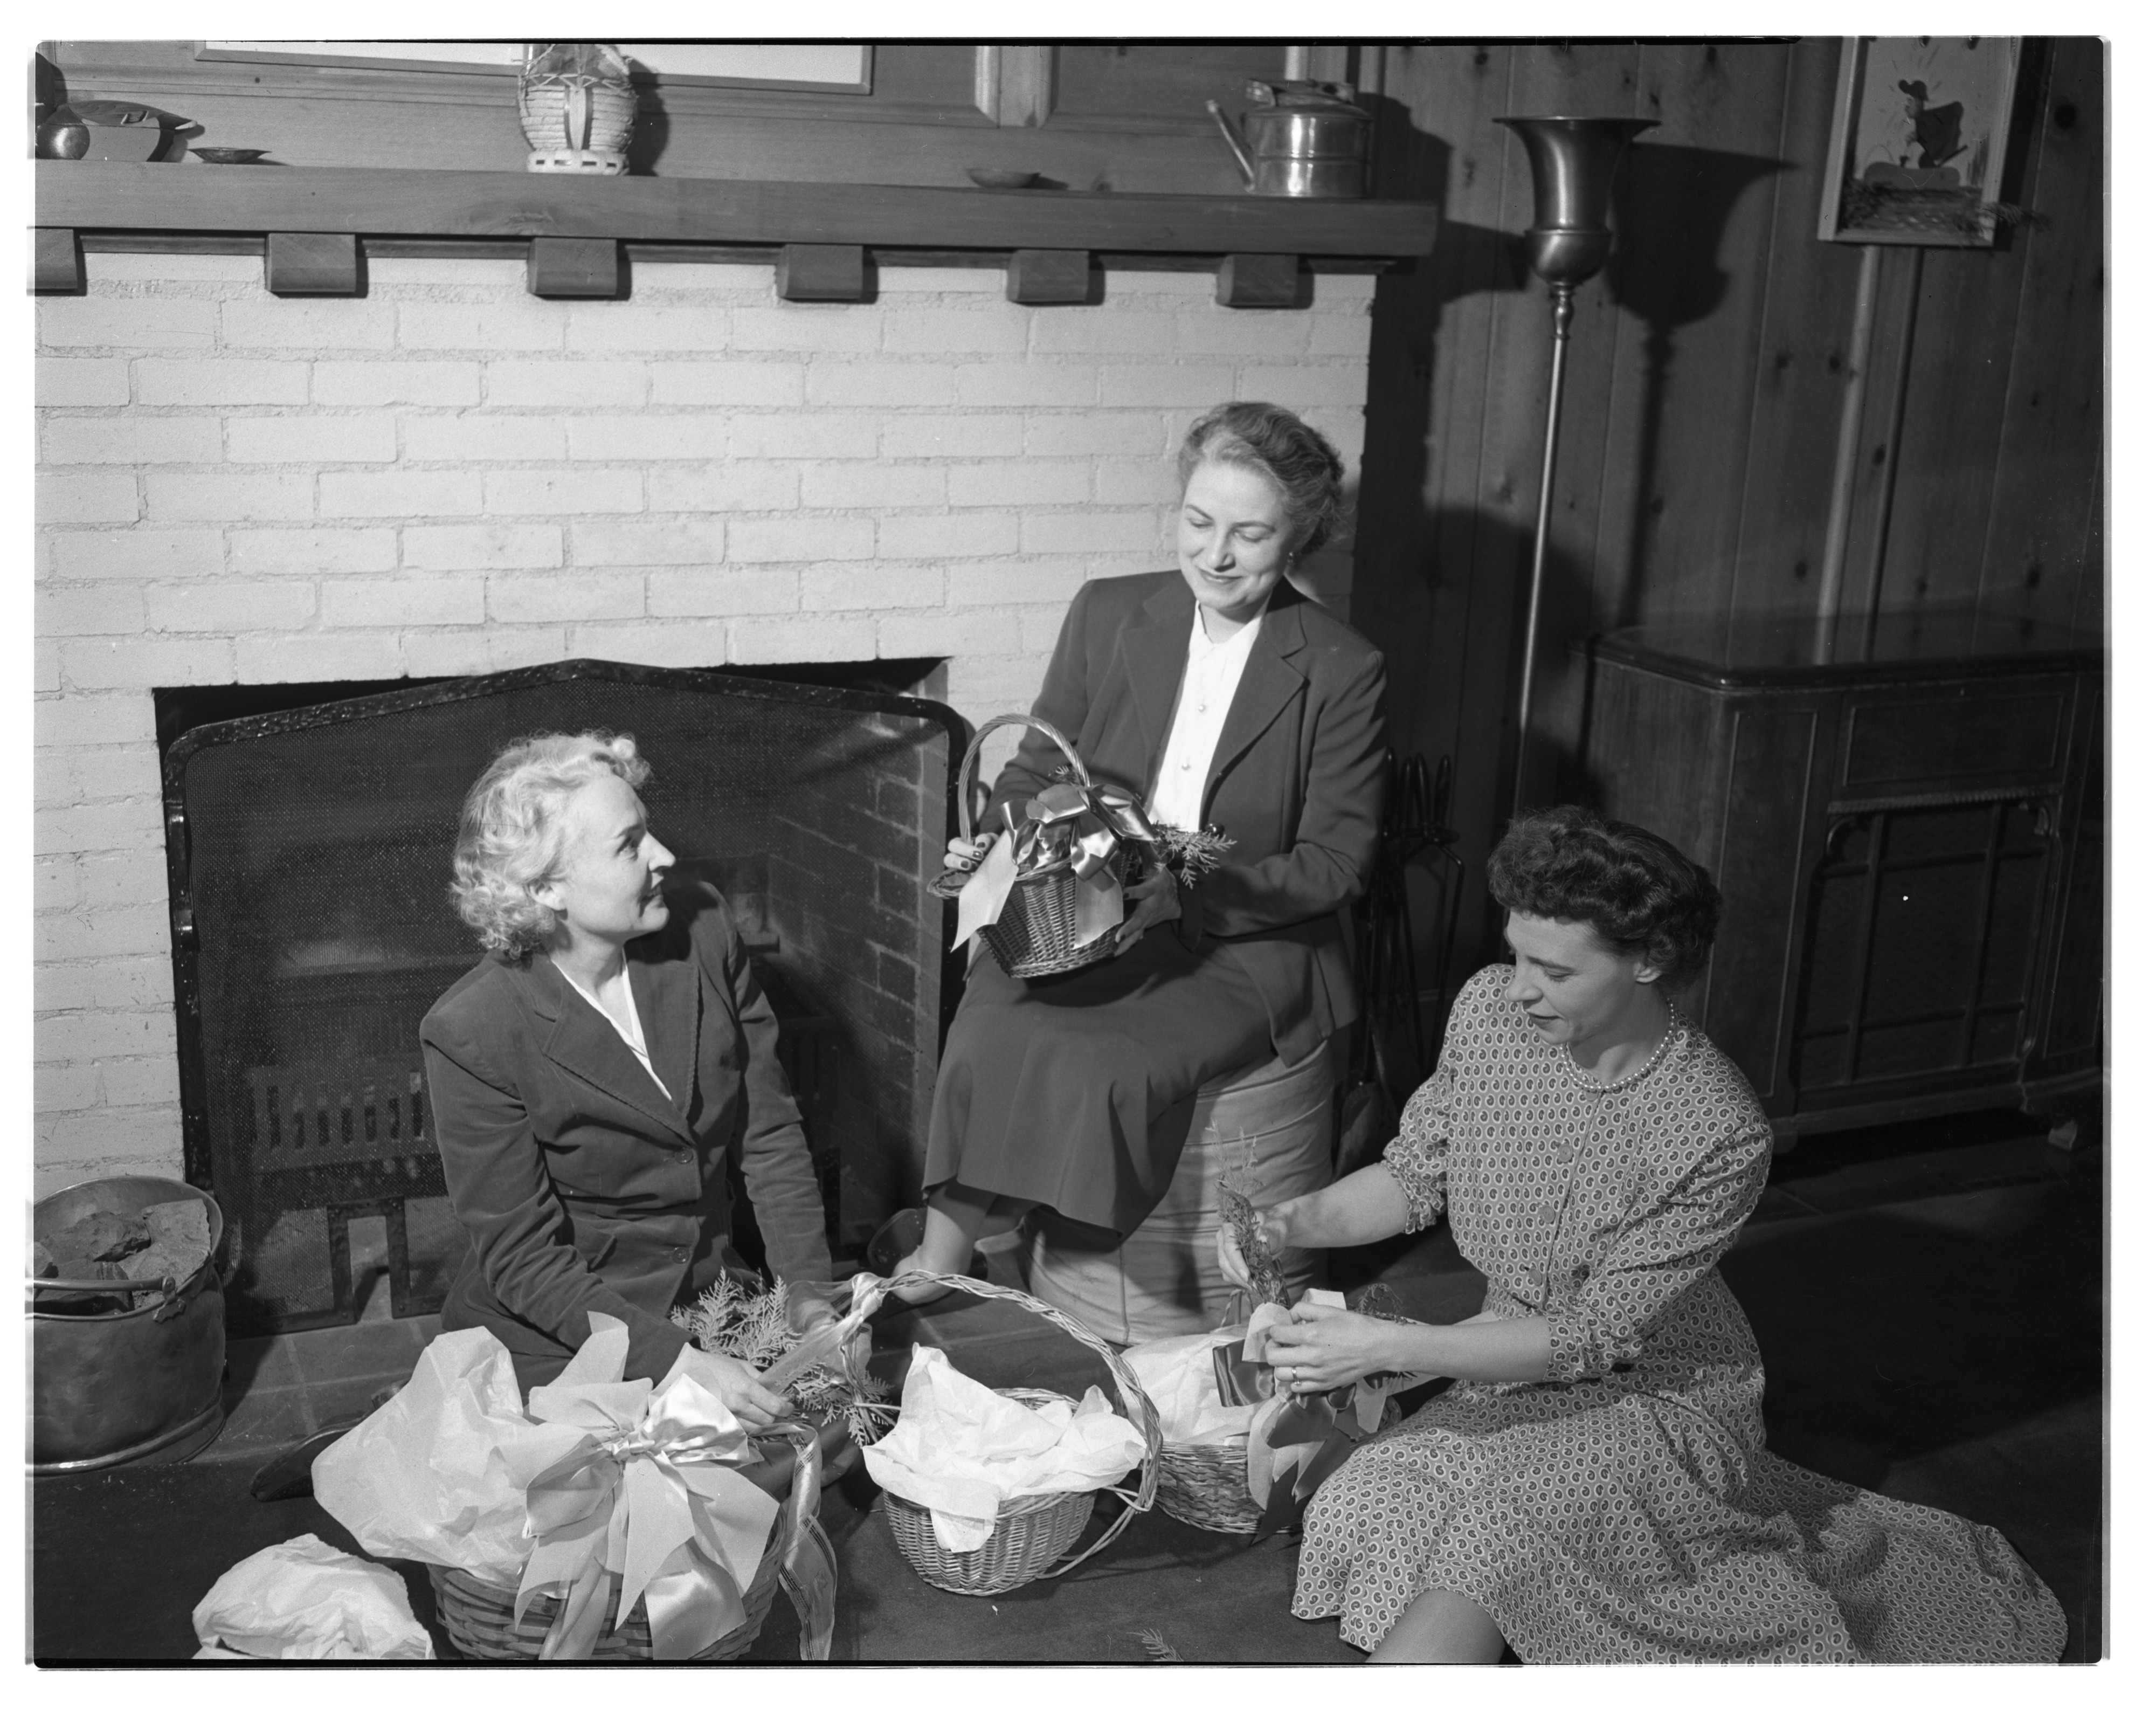 Thrift Shop Members Prepare Christmas Baskets For Needy, December 1948 image